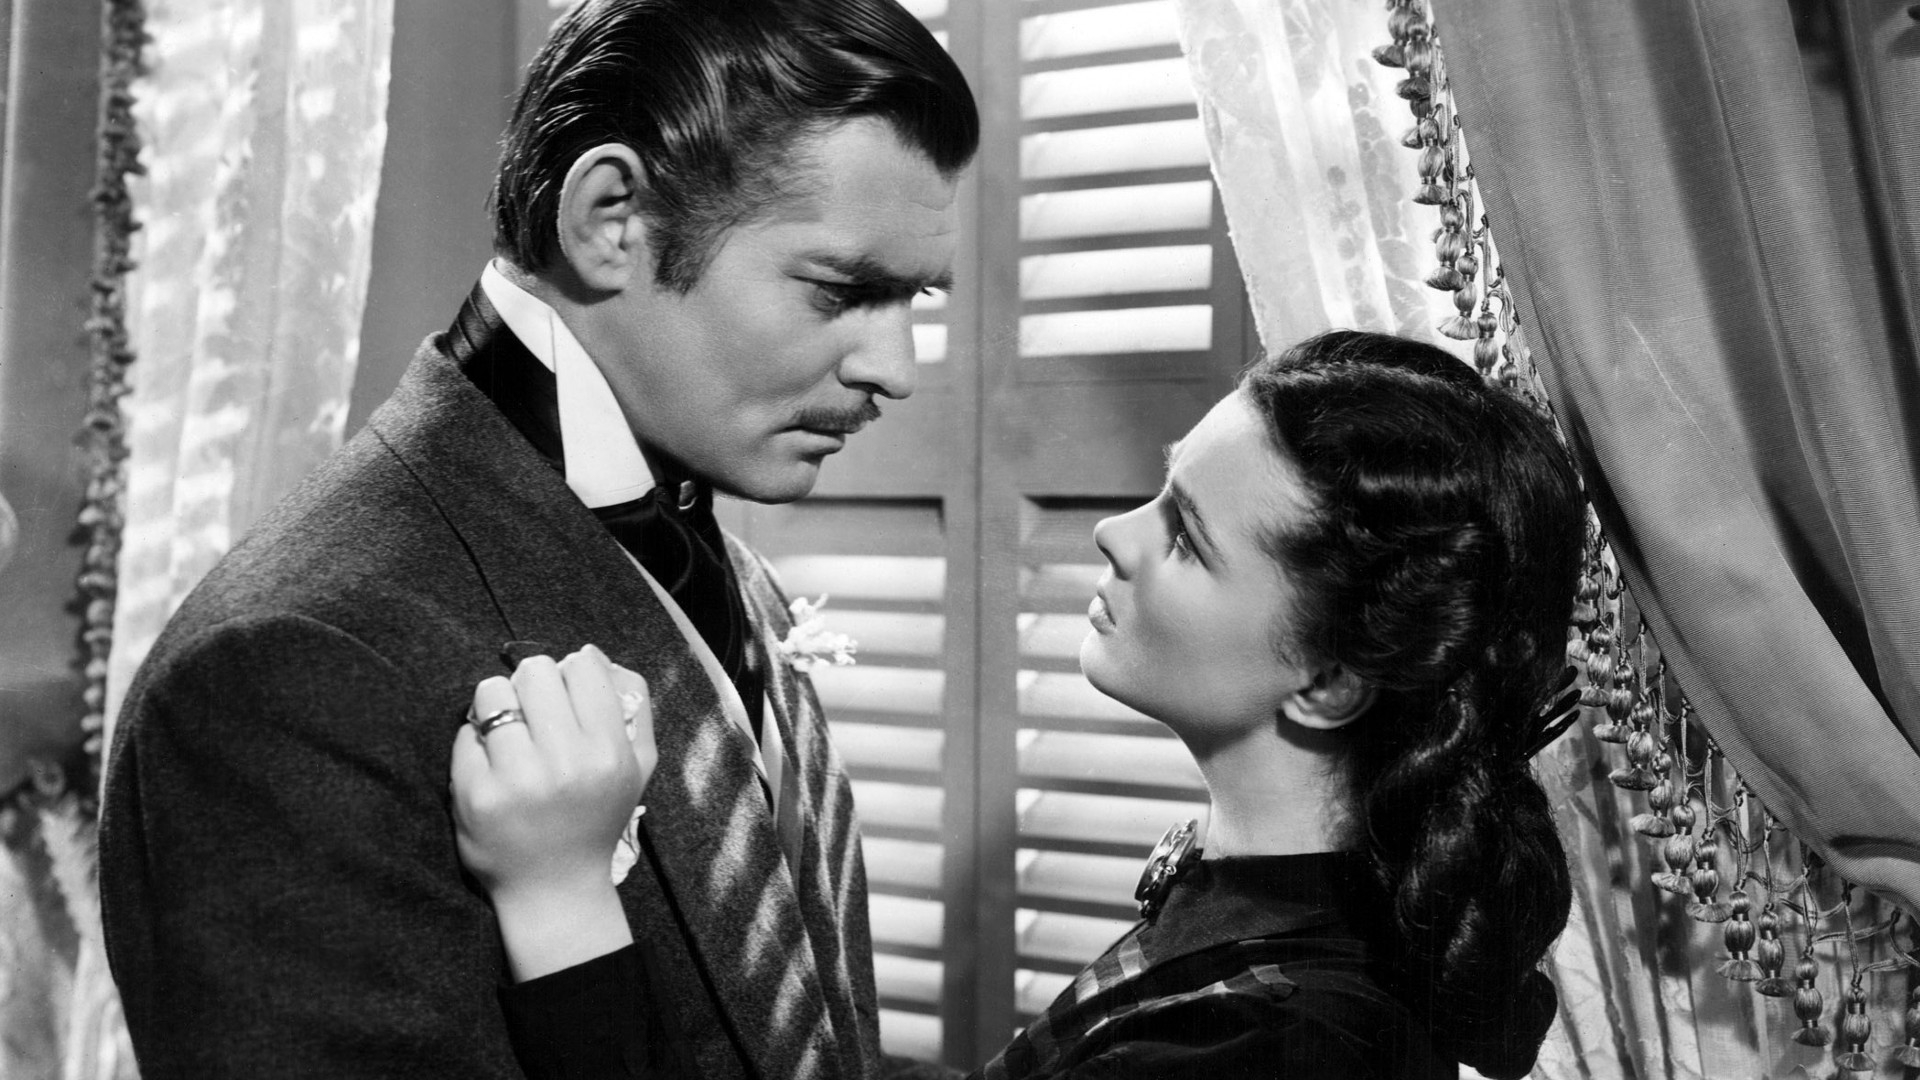 Download Wallpaper 1920x1080 Gone With The Wind Vivien Leigh